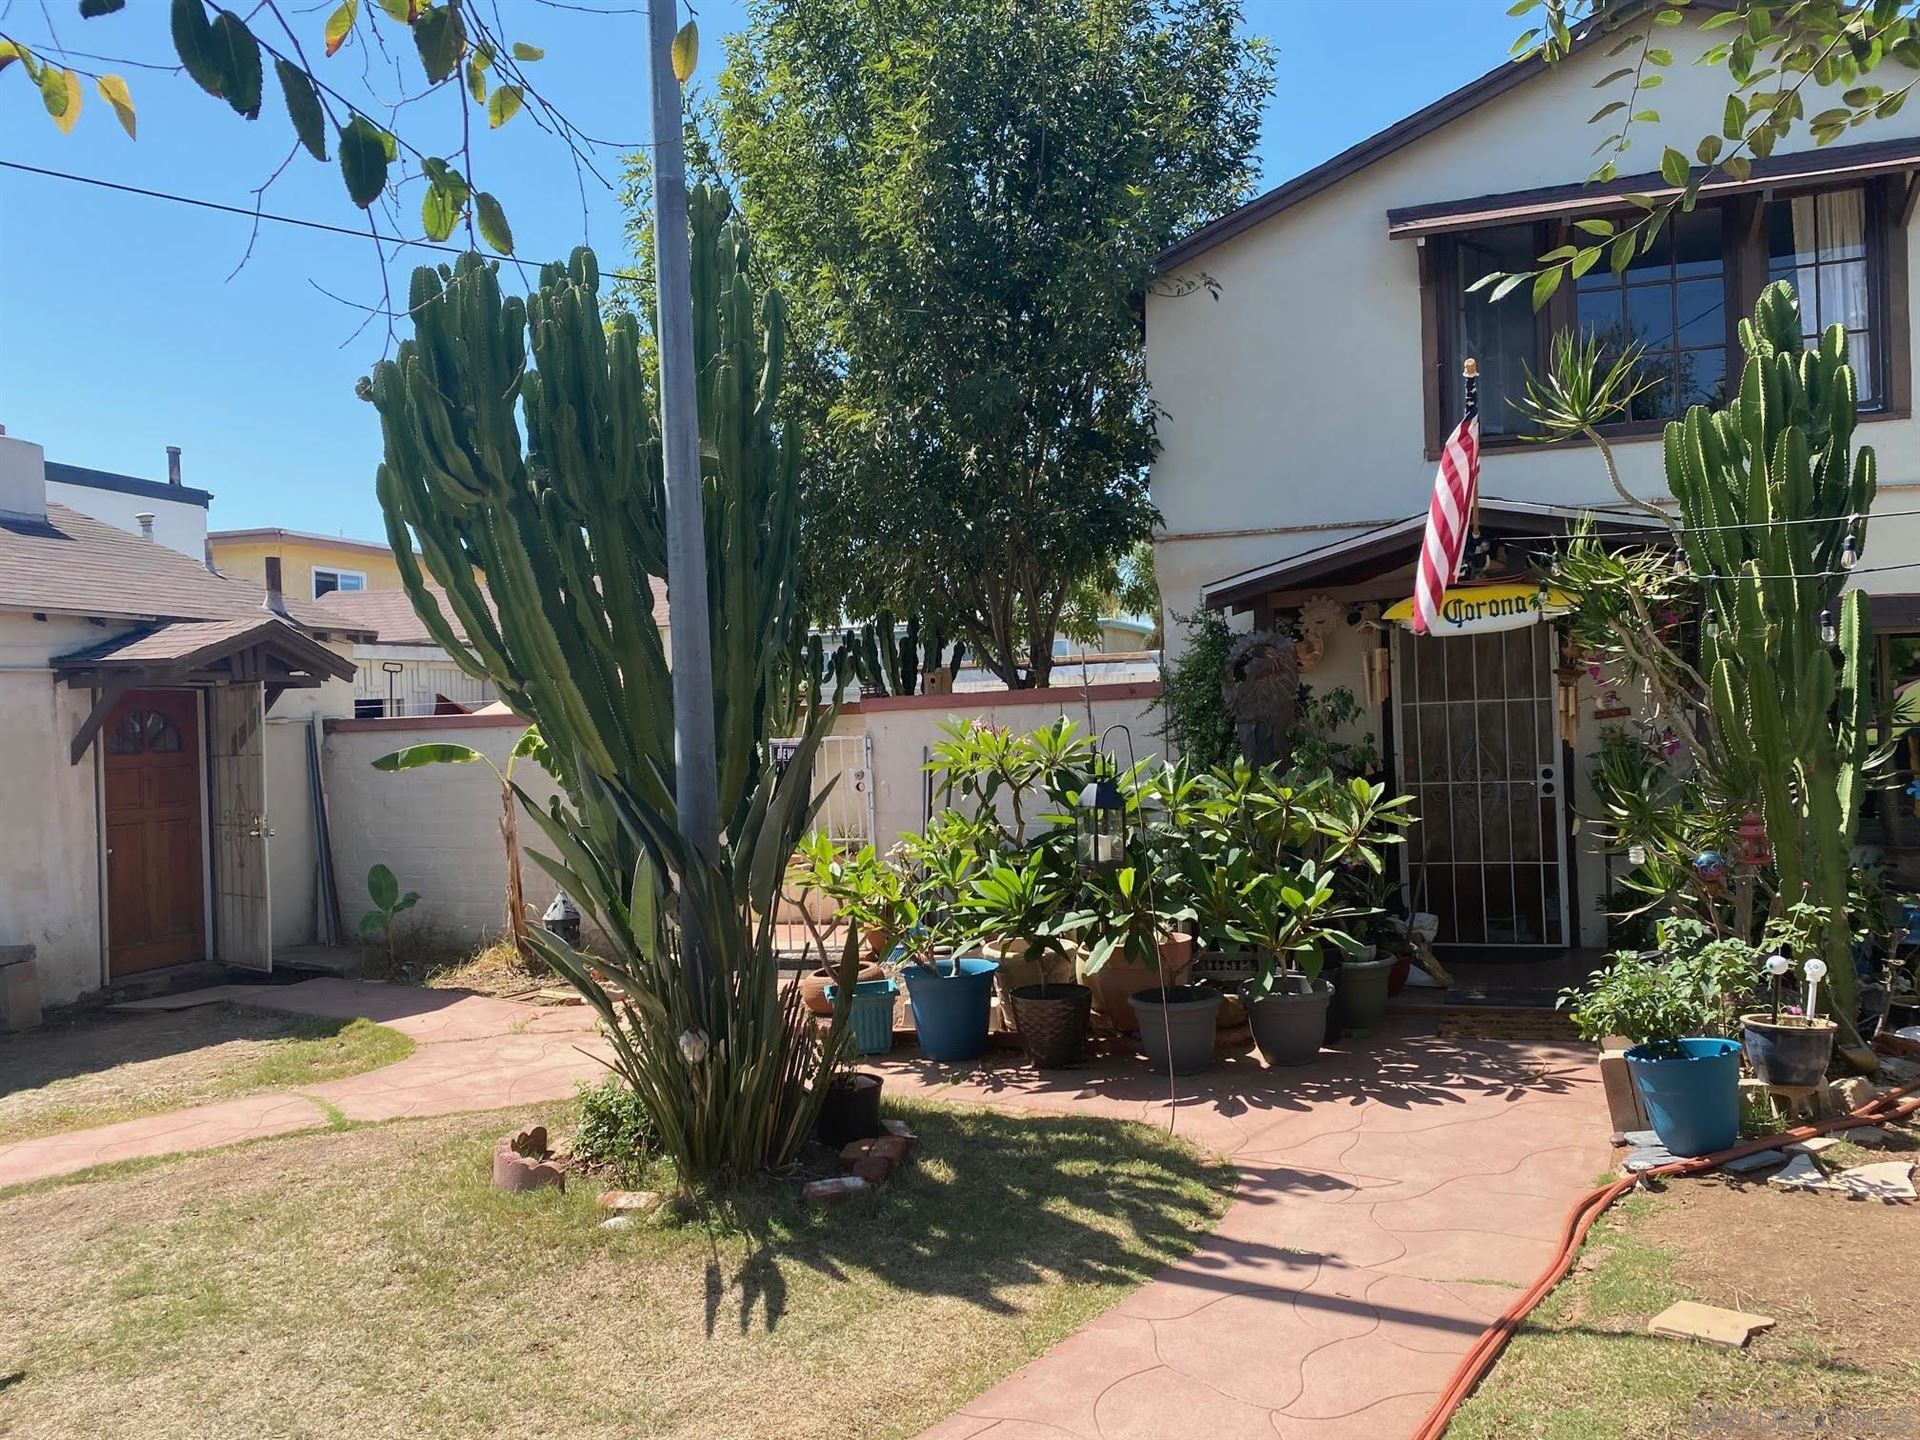 Photo of 1424-26 14th St, Imperial Beach, CA 91932 (MLS # 210026640)